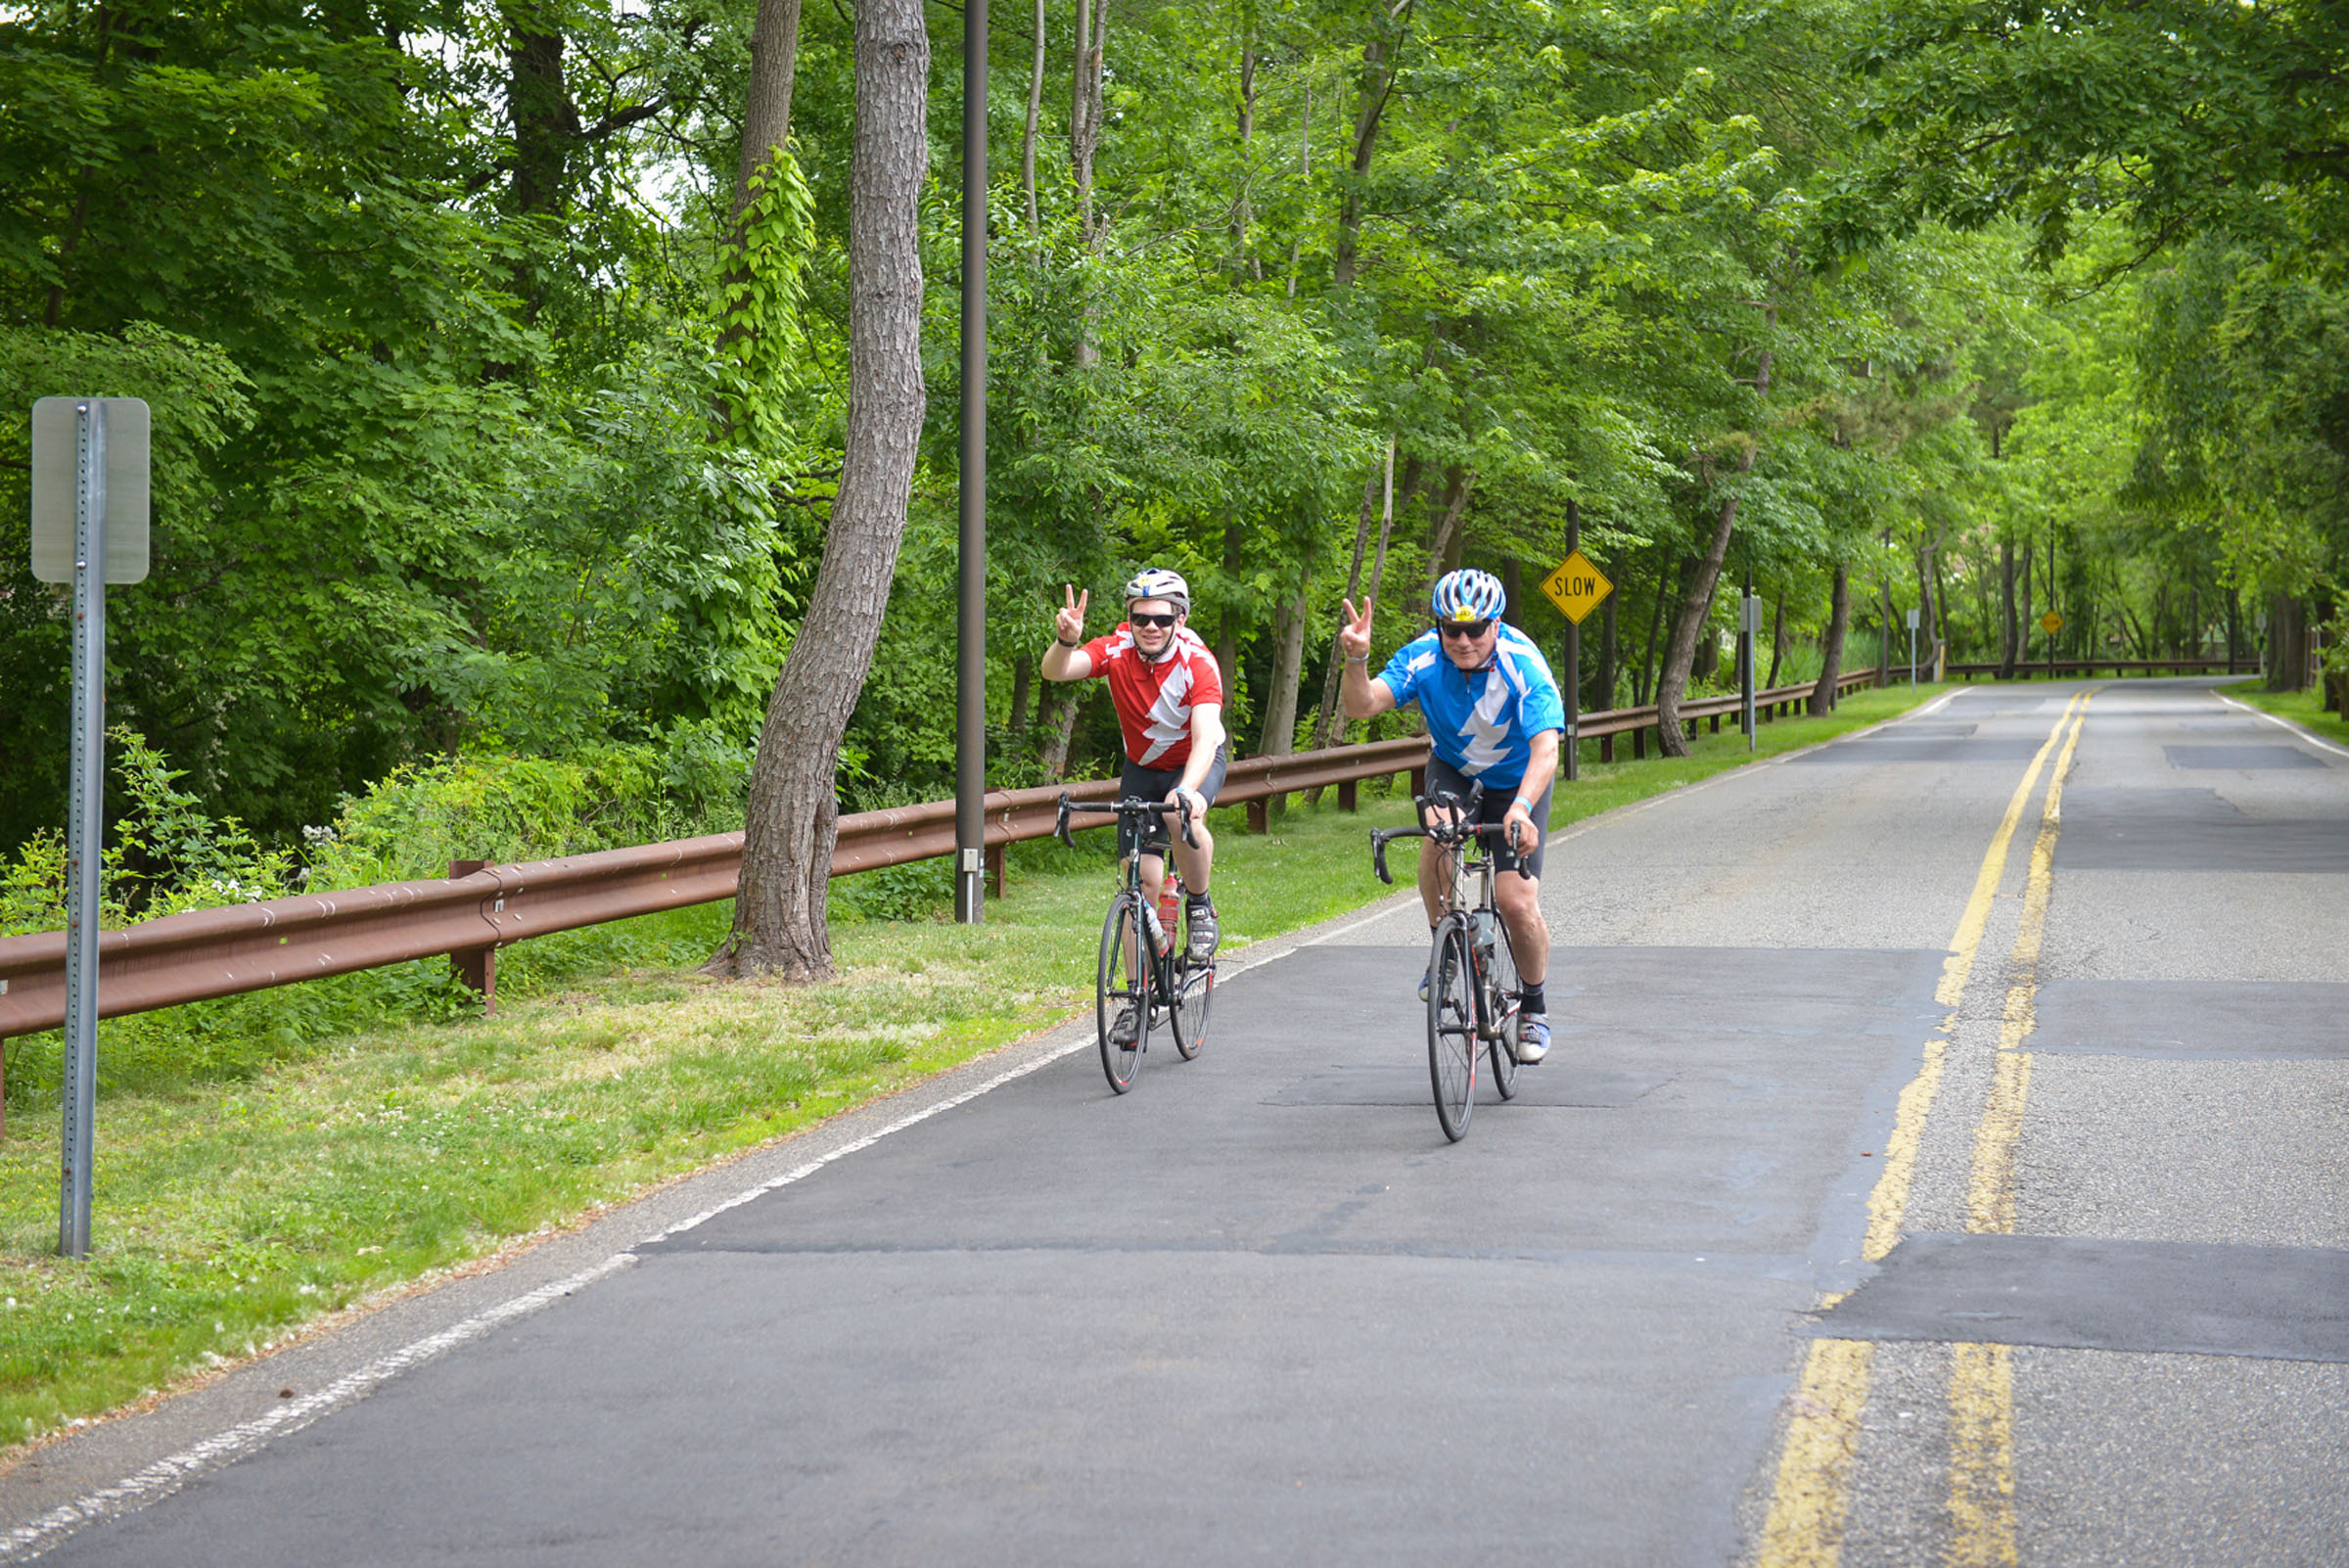 2017-06-04 GTD4A Charity Bike Ride - BCC - Paramus NJ-2328.jpg